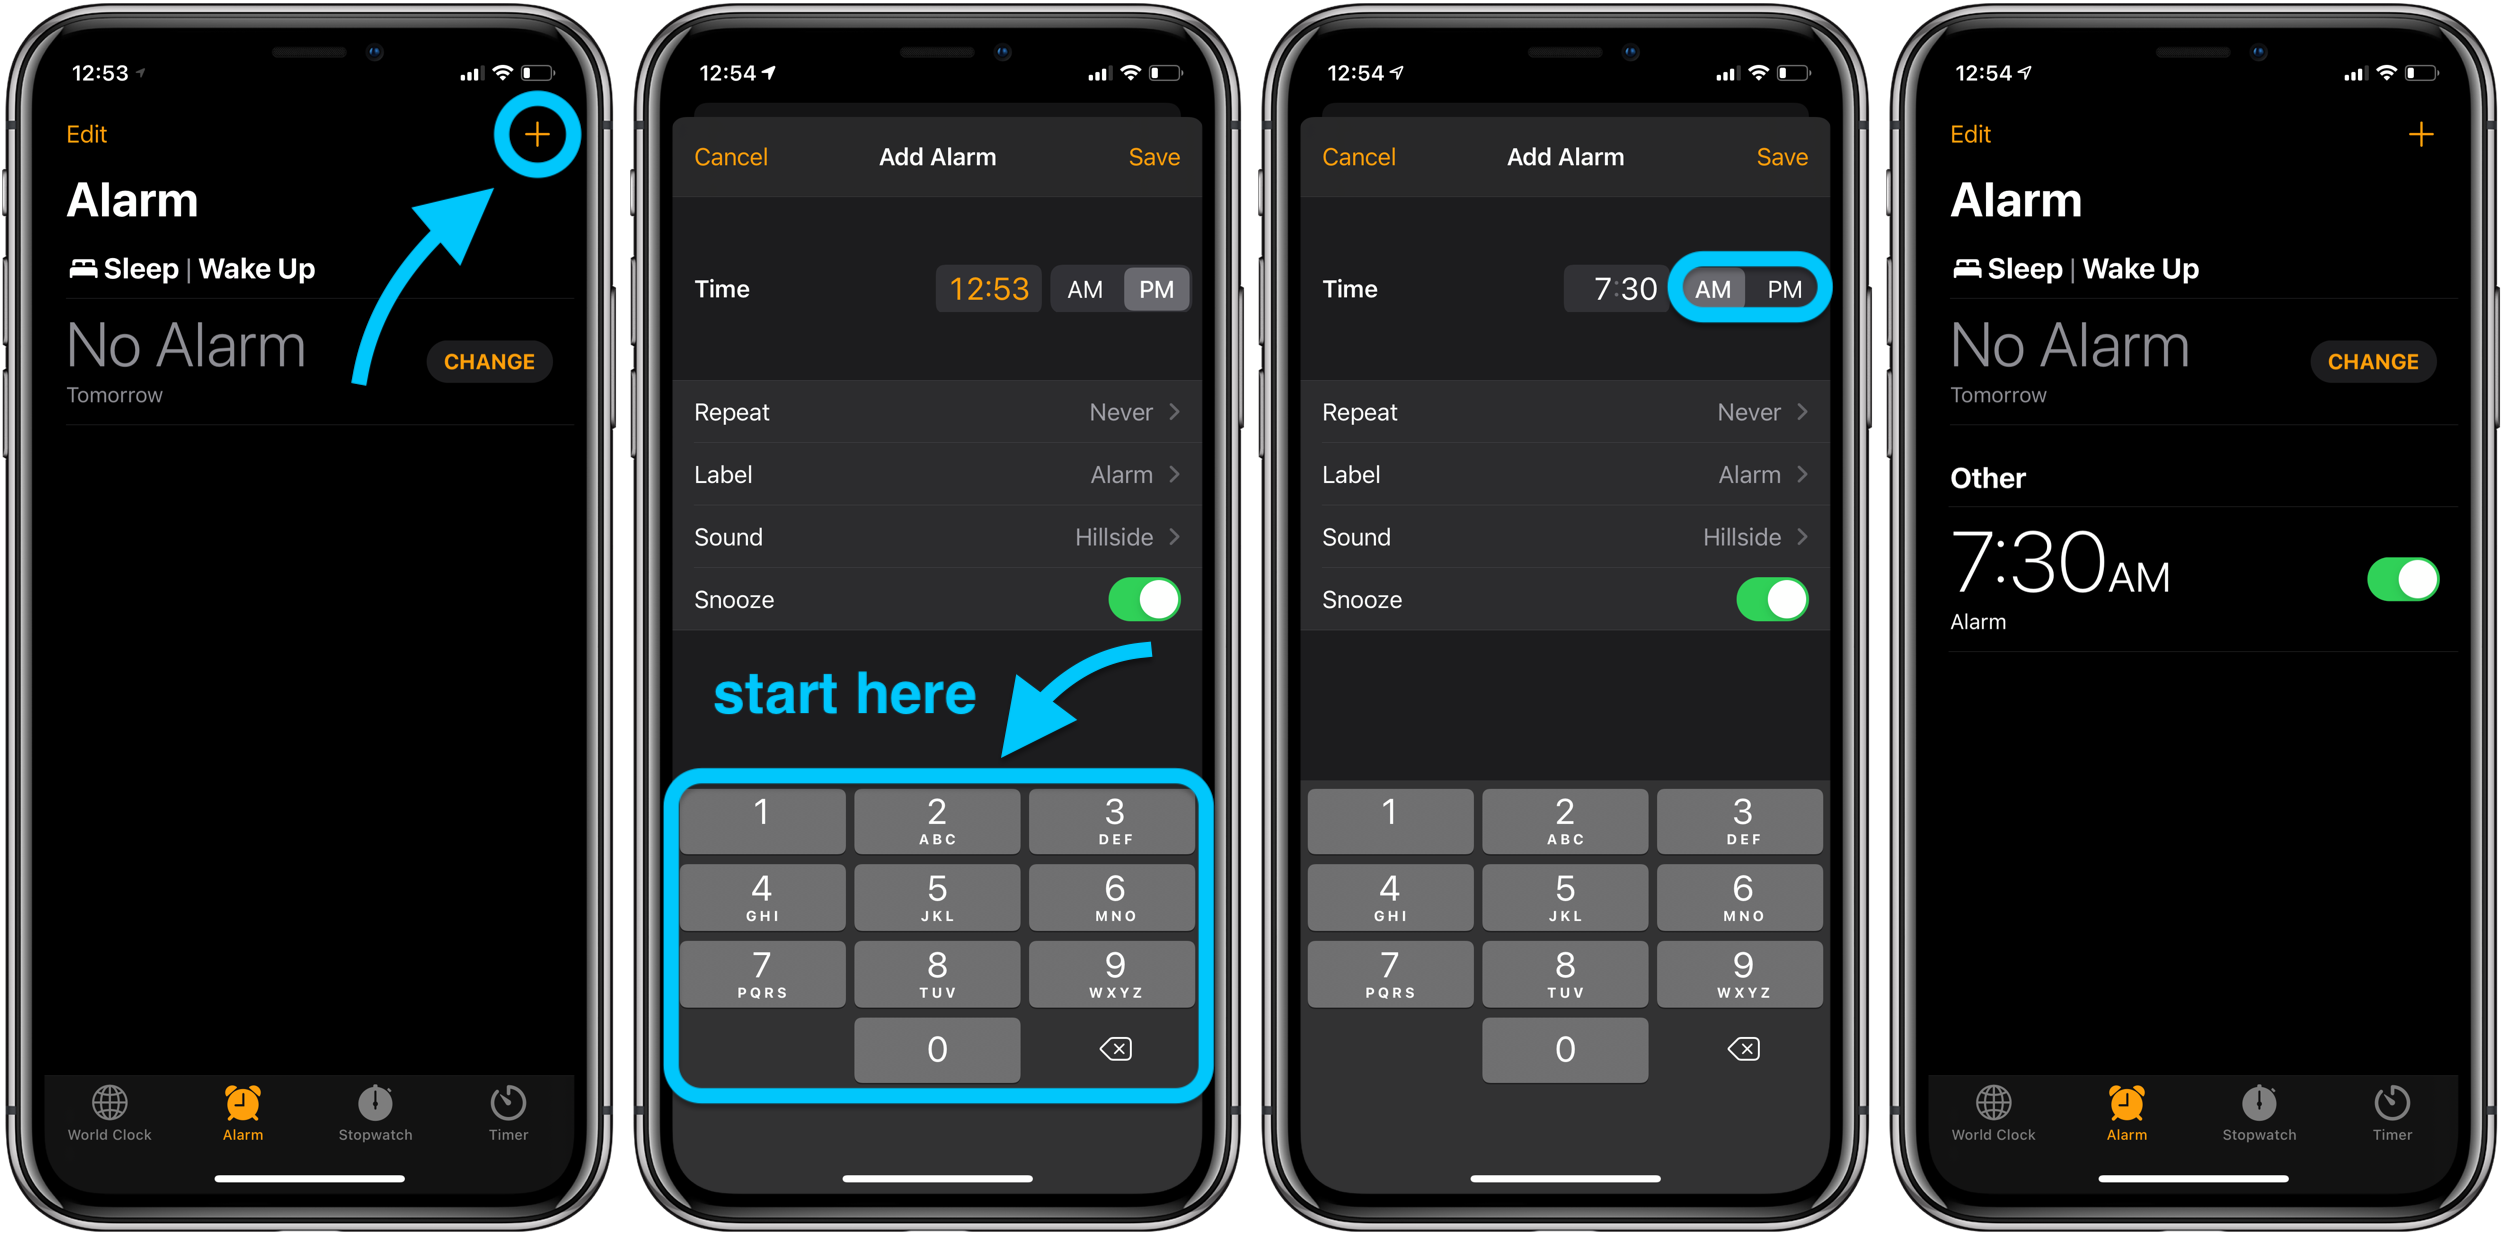 How to use the new iPhone alarms in iOS 14